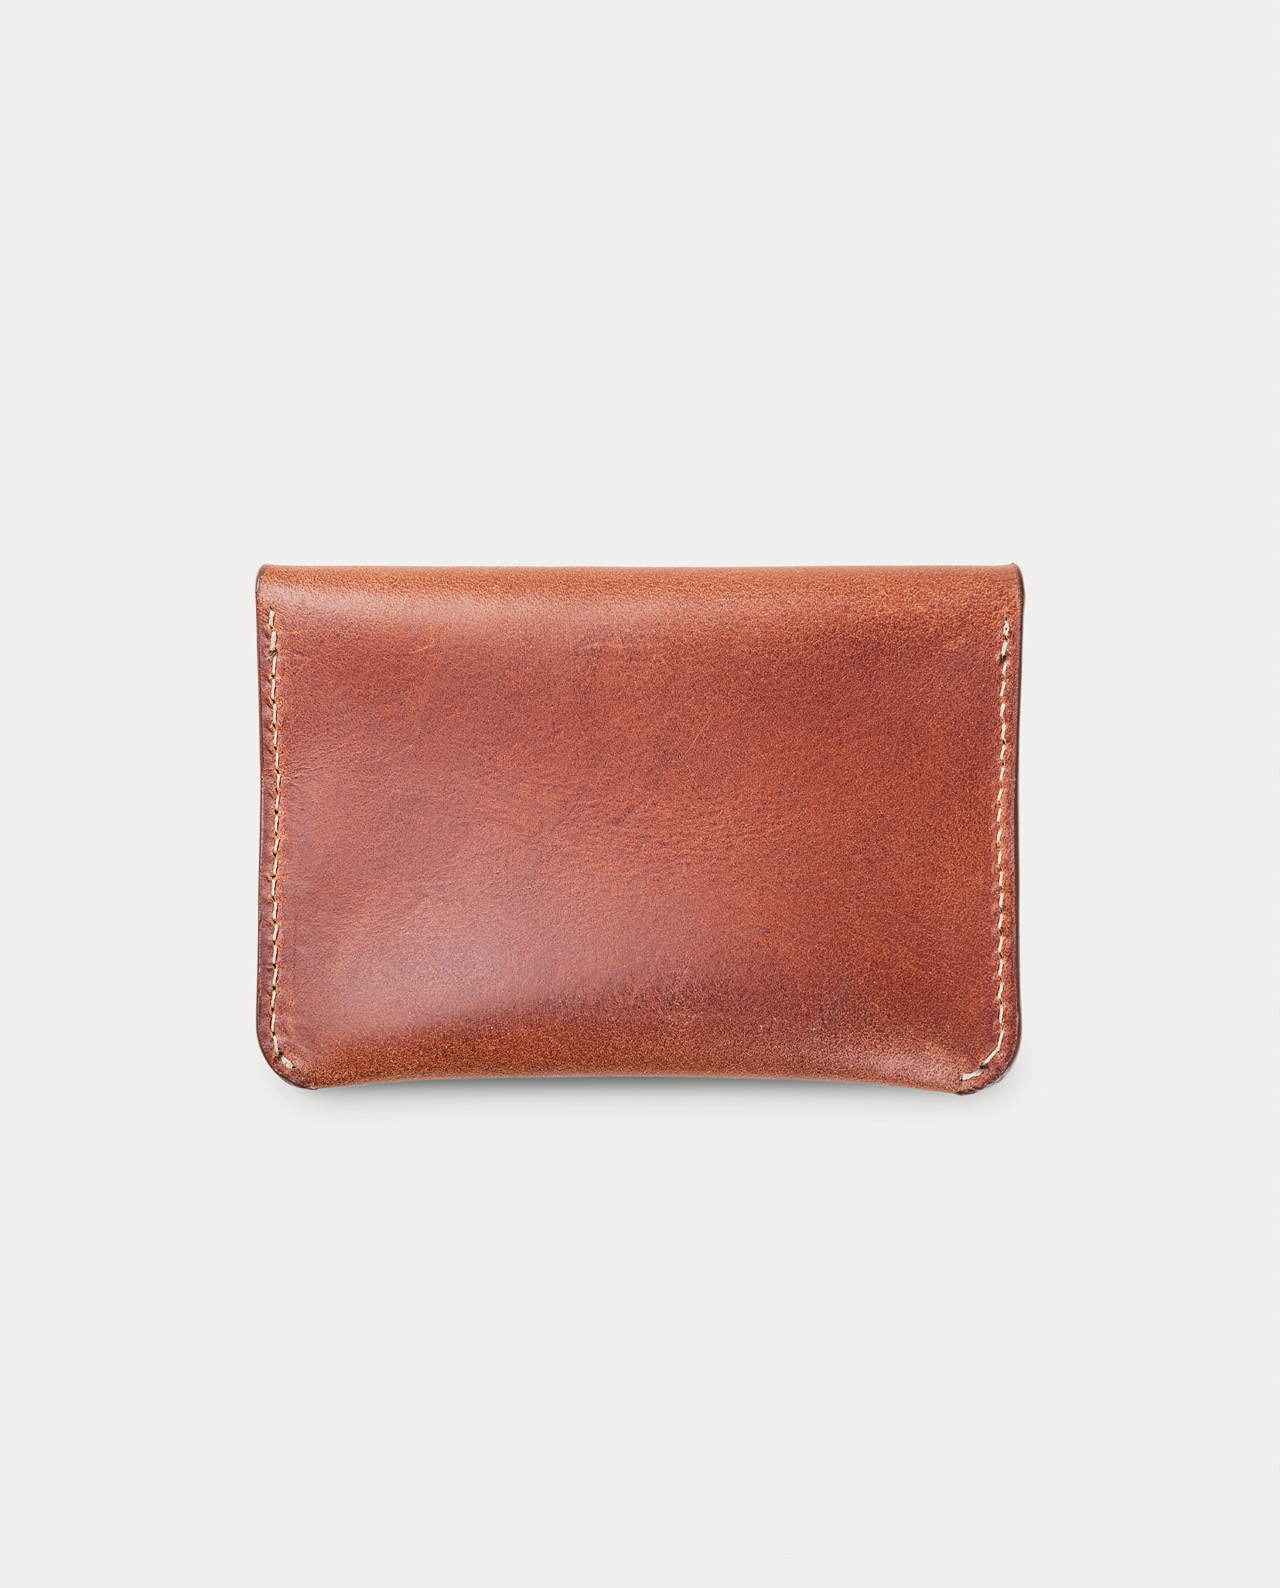 flap wallet brown for coins, cards and bills